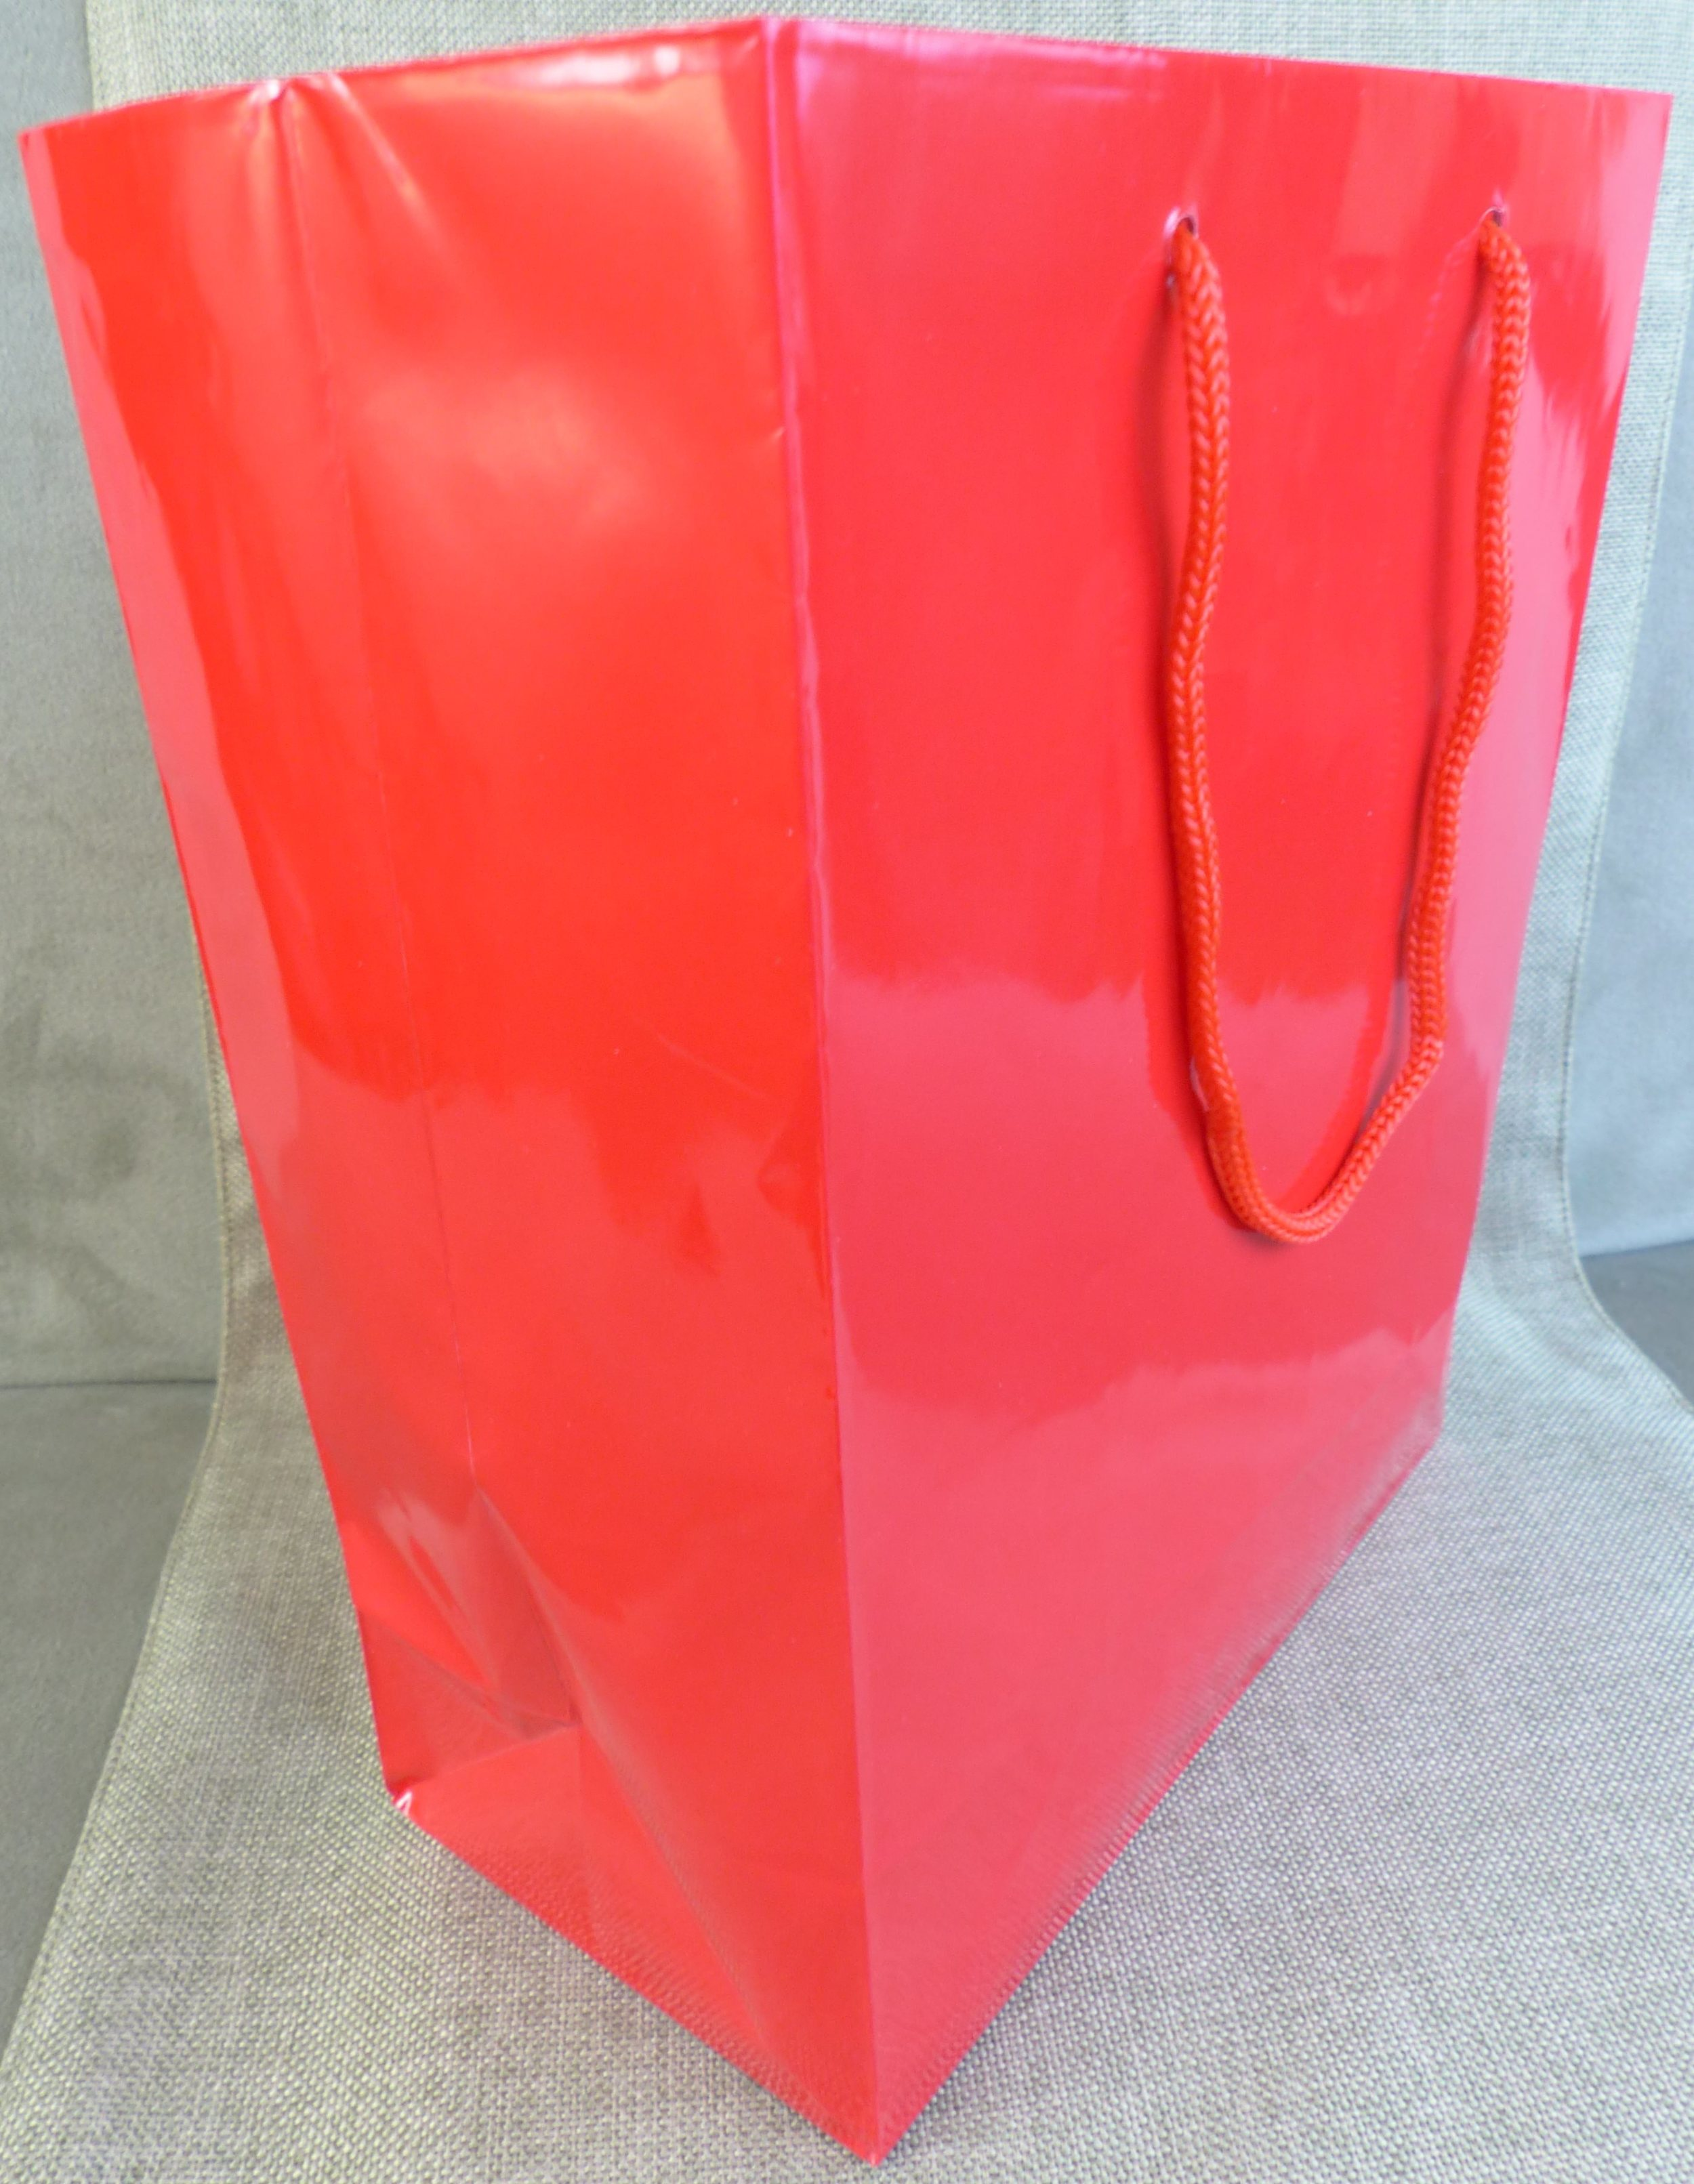 Gift Bags and Boxes Photos 2016-04-13 029.JPG